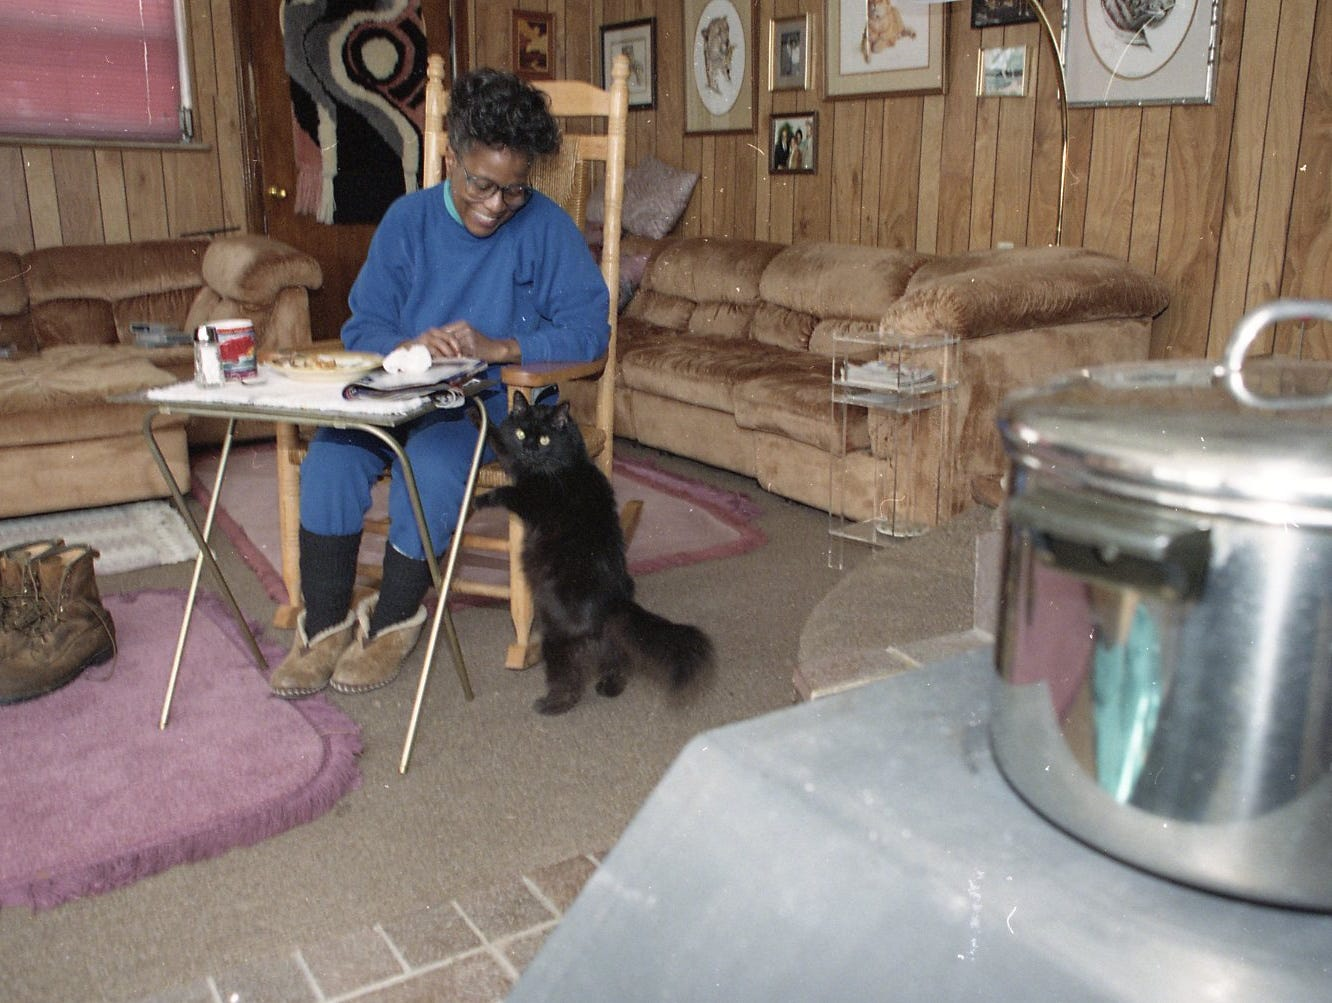 Pat Toms pets her cat J.J. while eating in her den in March 1993. The Toms have been without heat since 4:00 p.m. Saturday afternoon and are using a wood stove for warmth as well as for cooking.